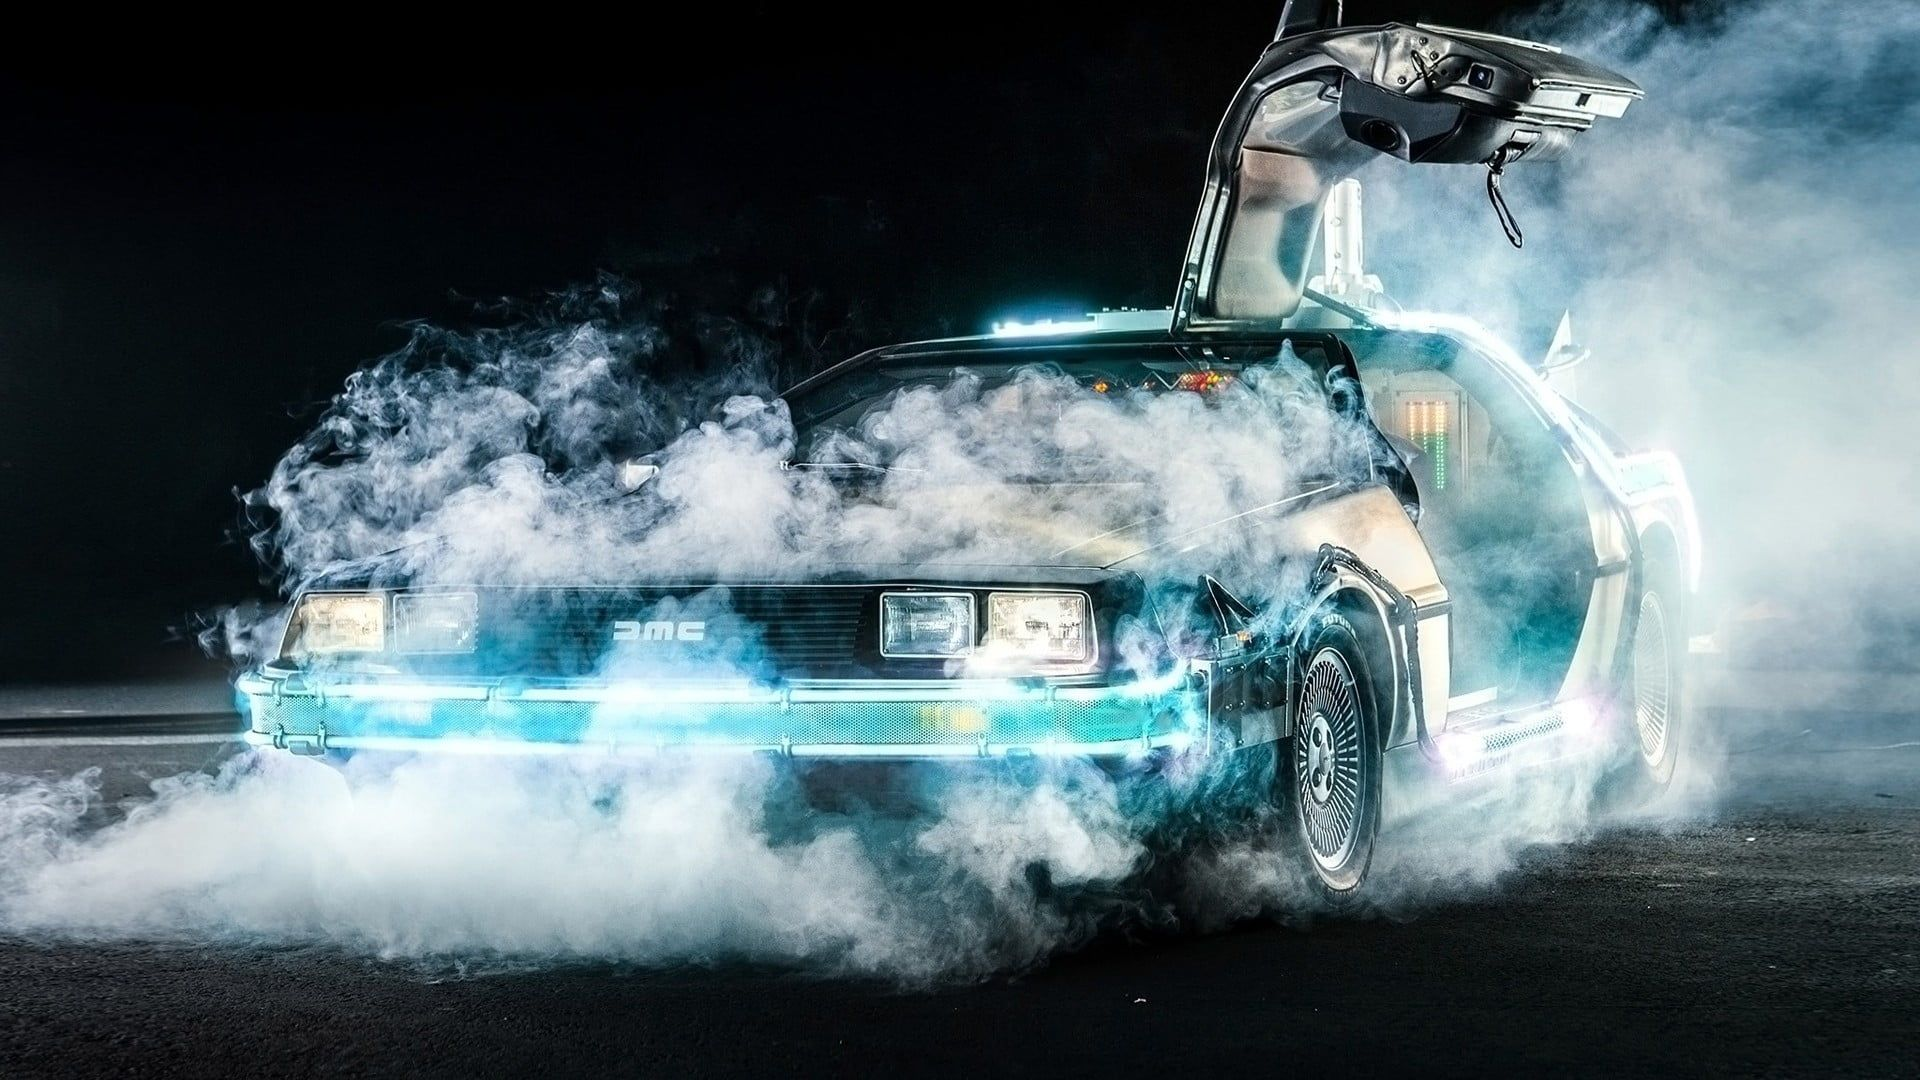 Green Vehicle Wallpaper Back To The Future Delorean Time Travel